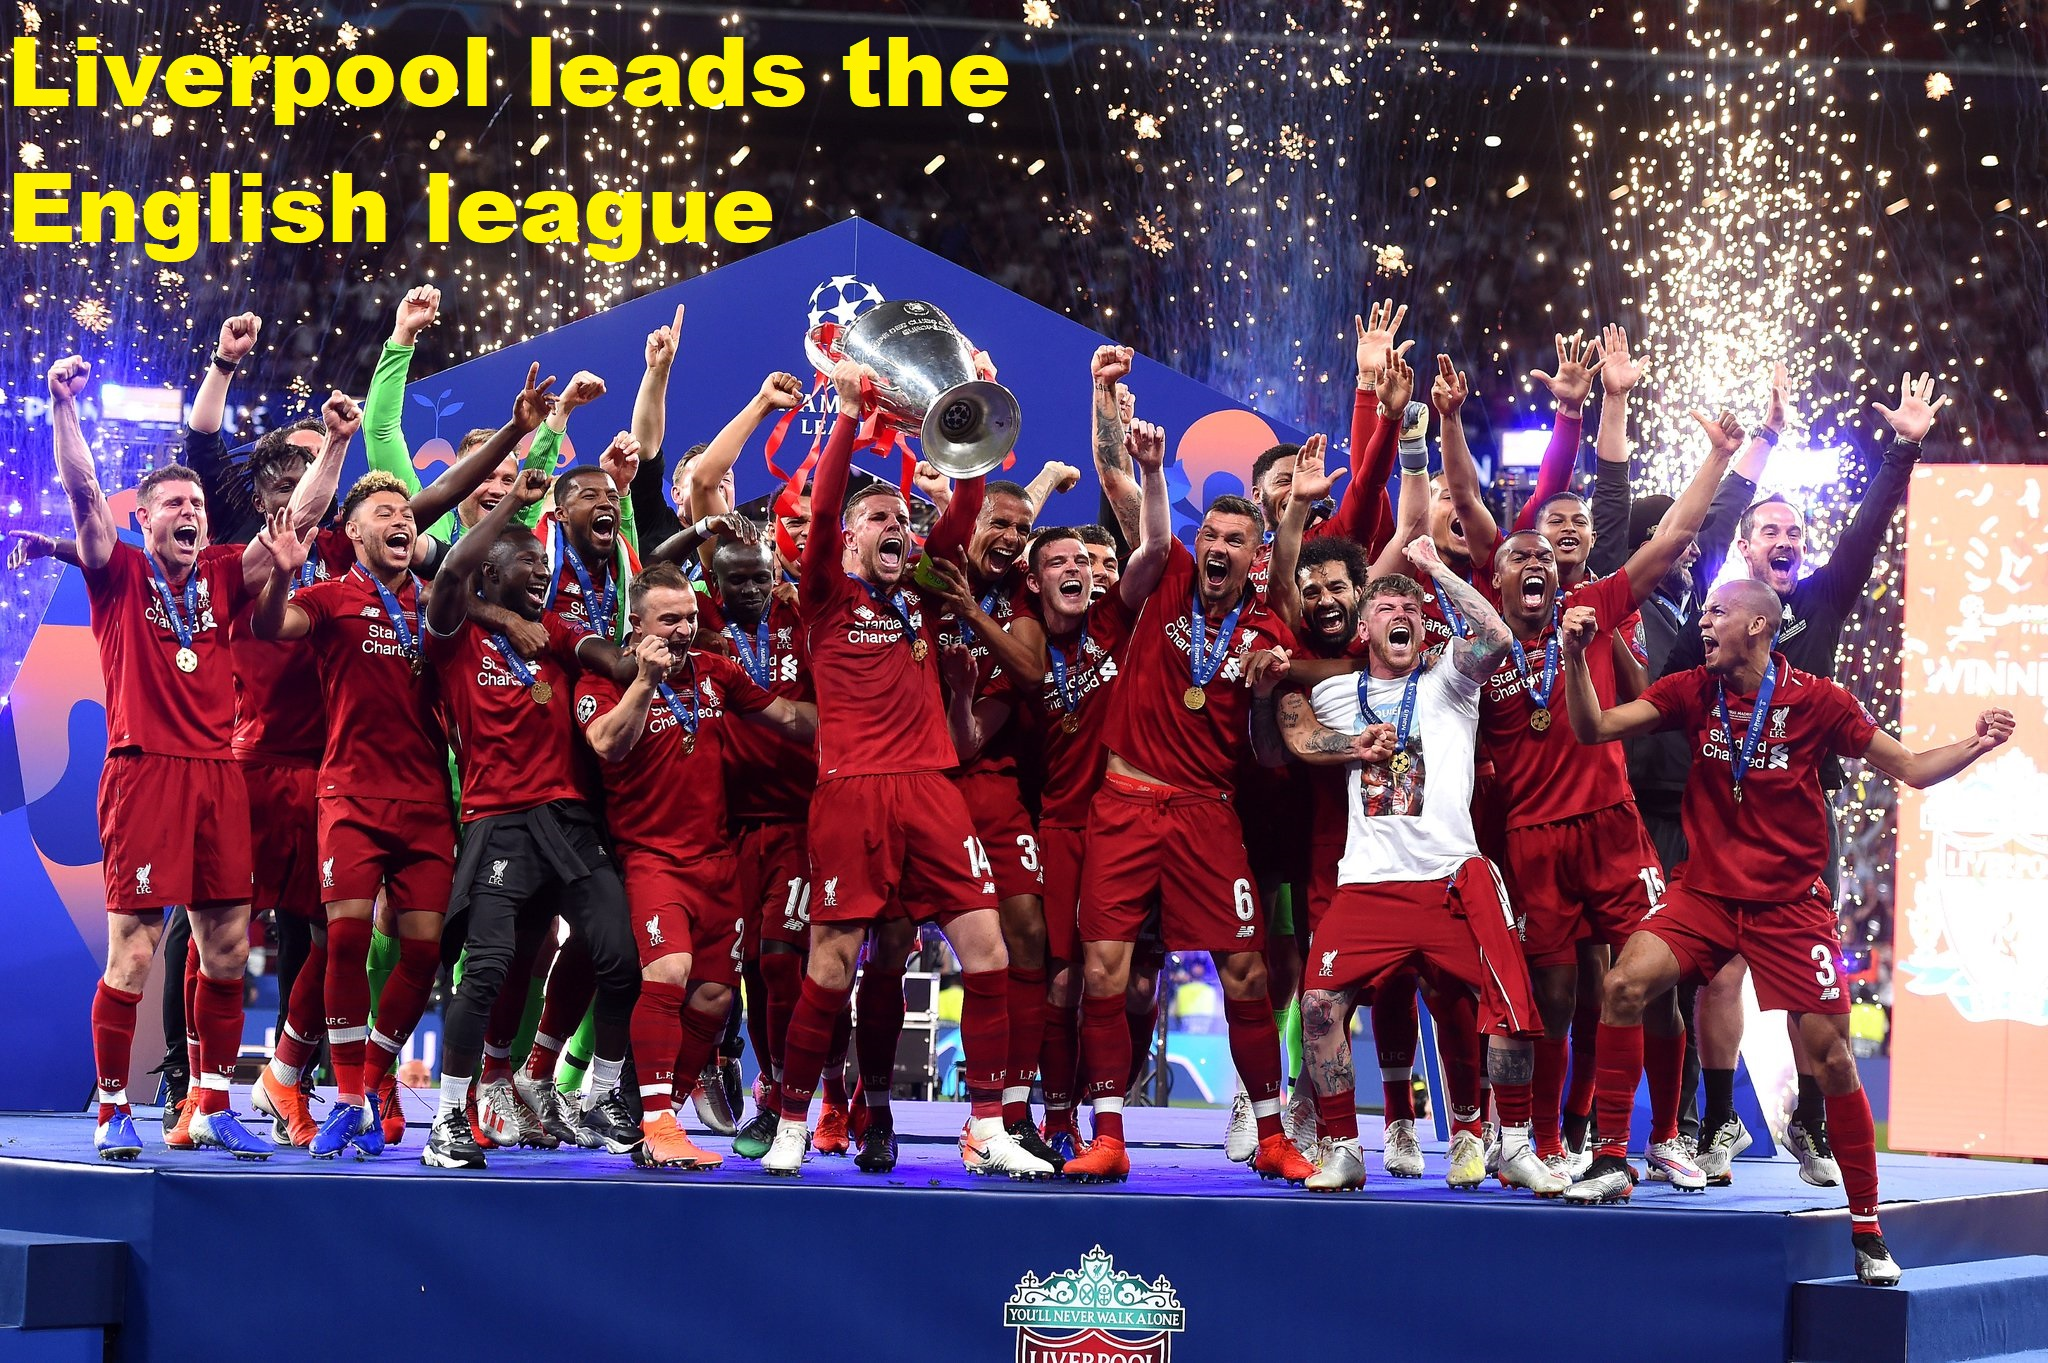 Liverpool leads the English league